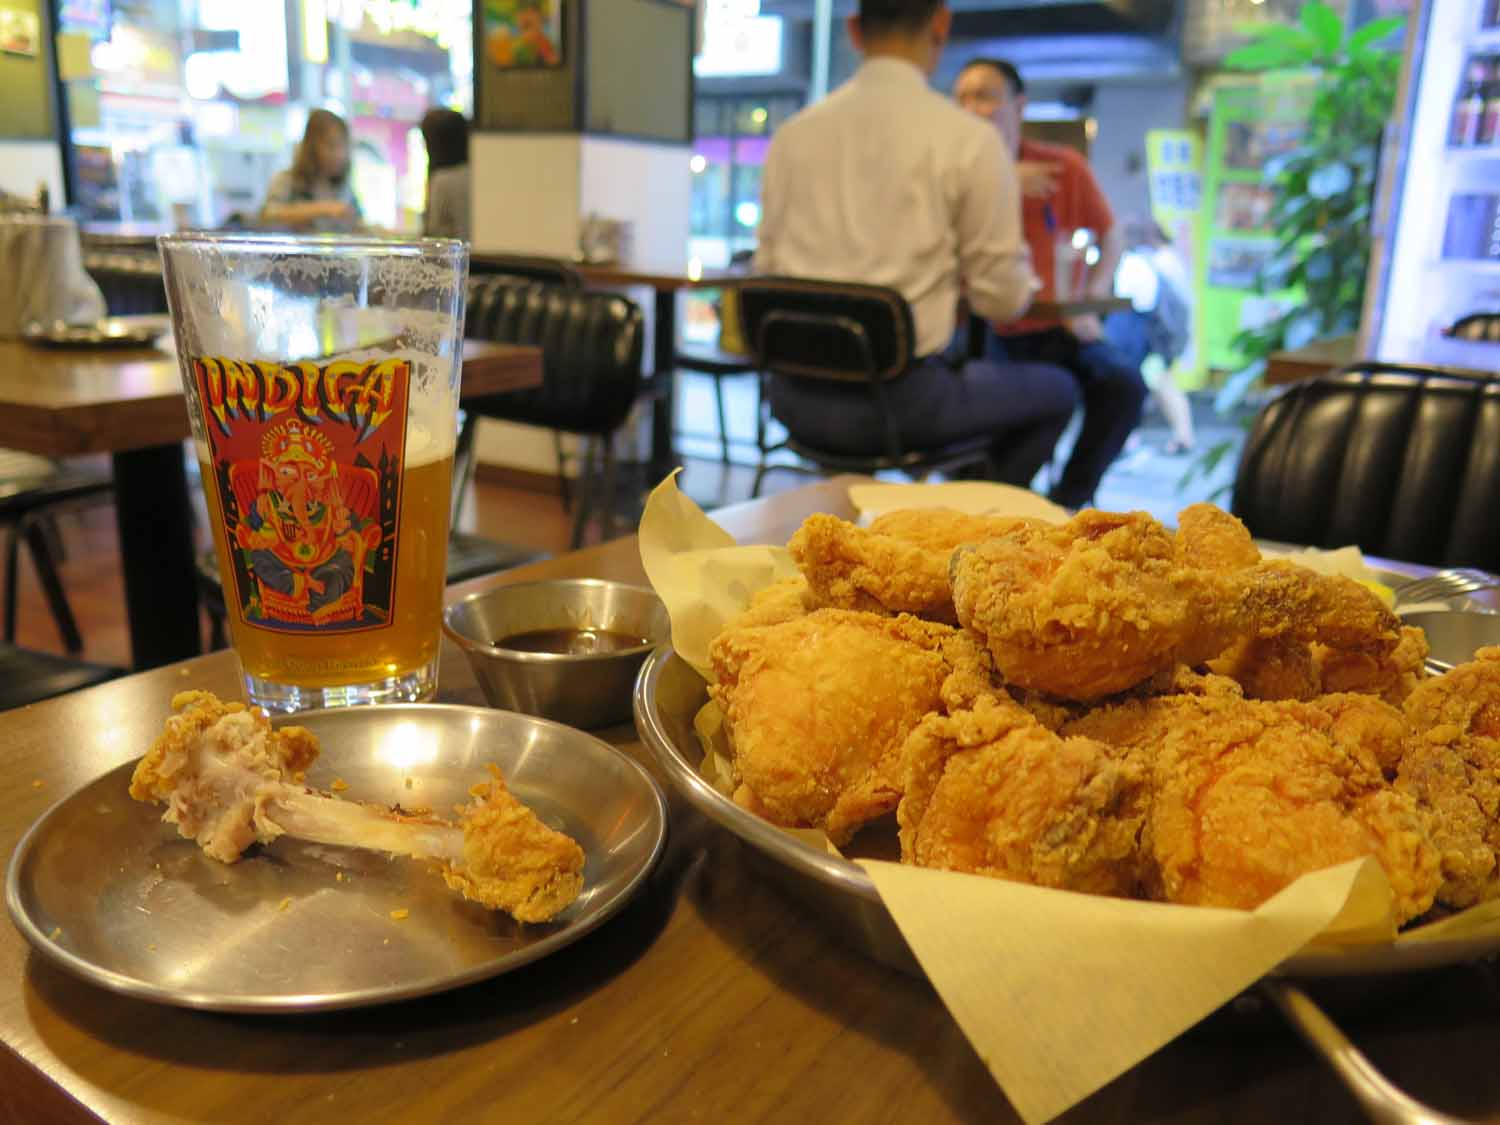 Korea-Seoul-Food-And-Drink-Fried-Chicken